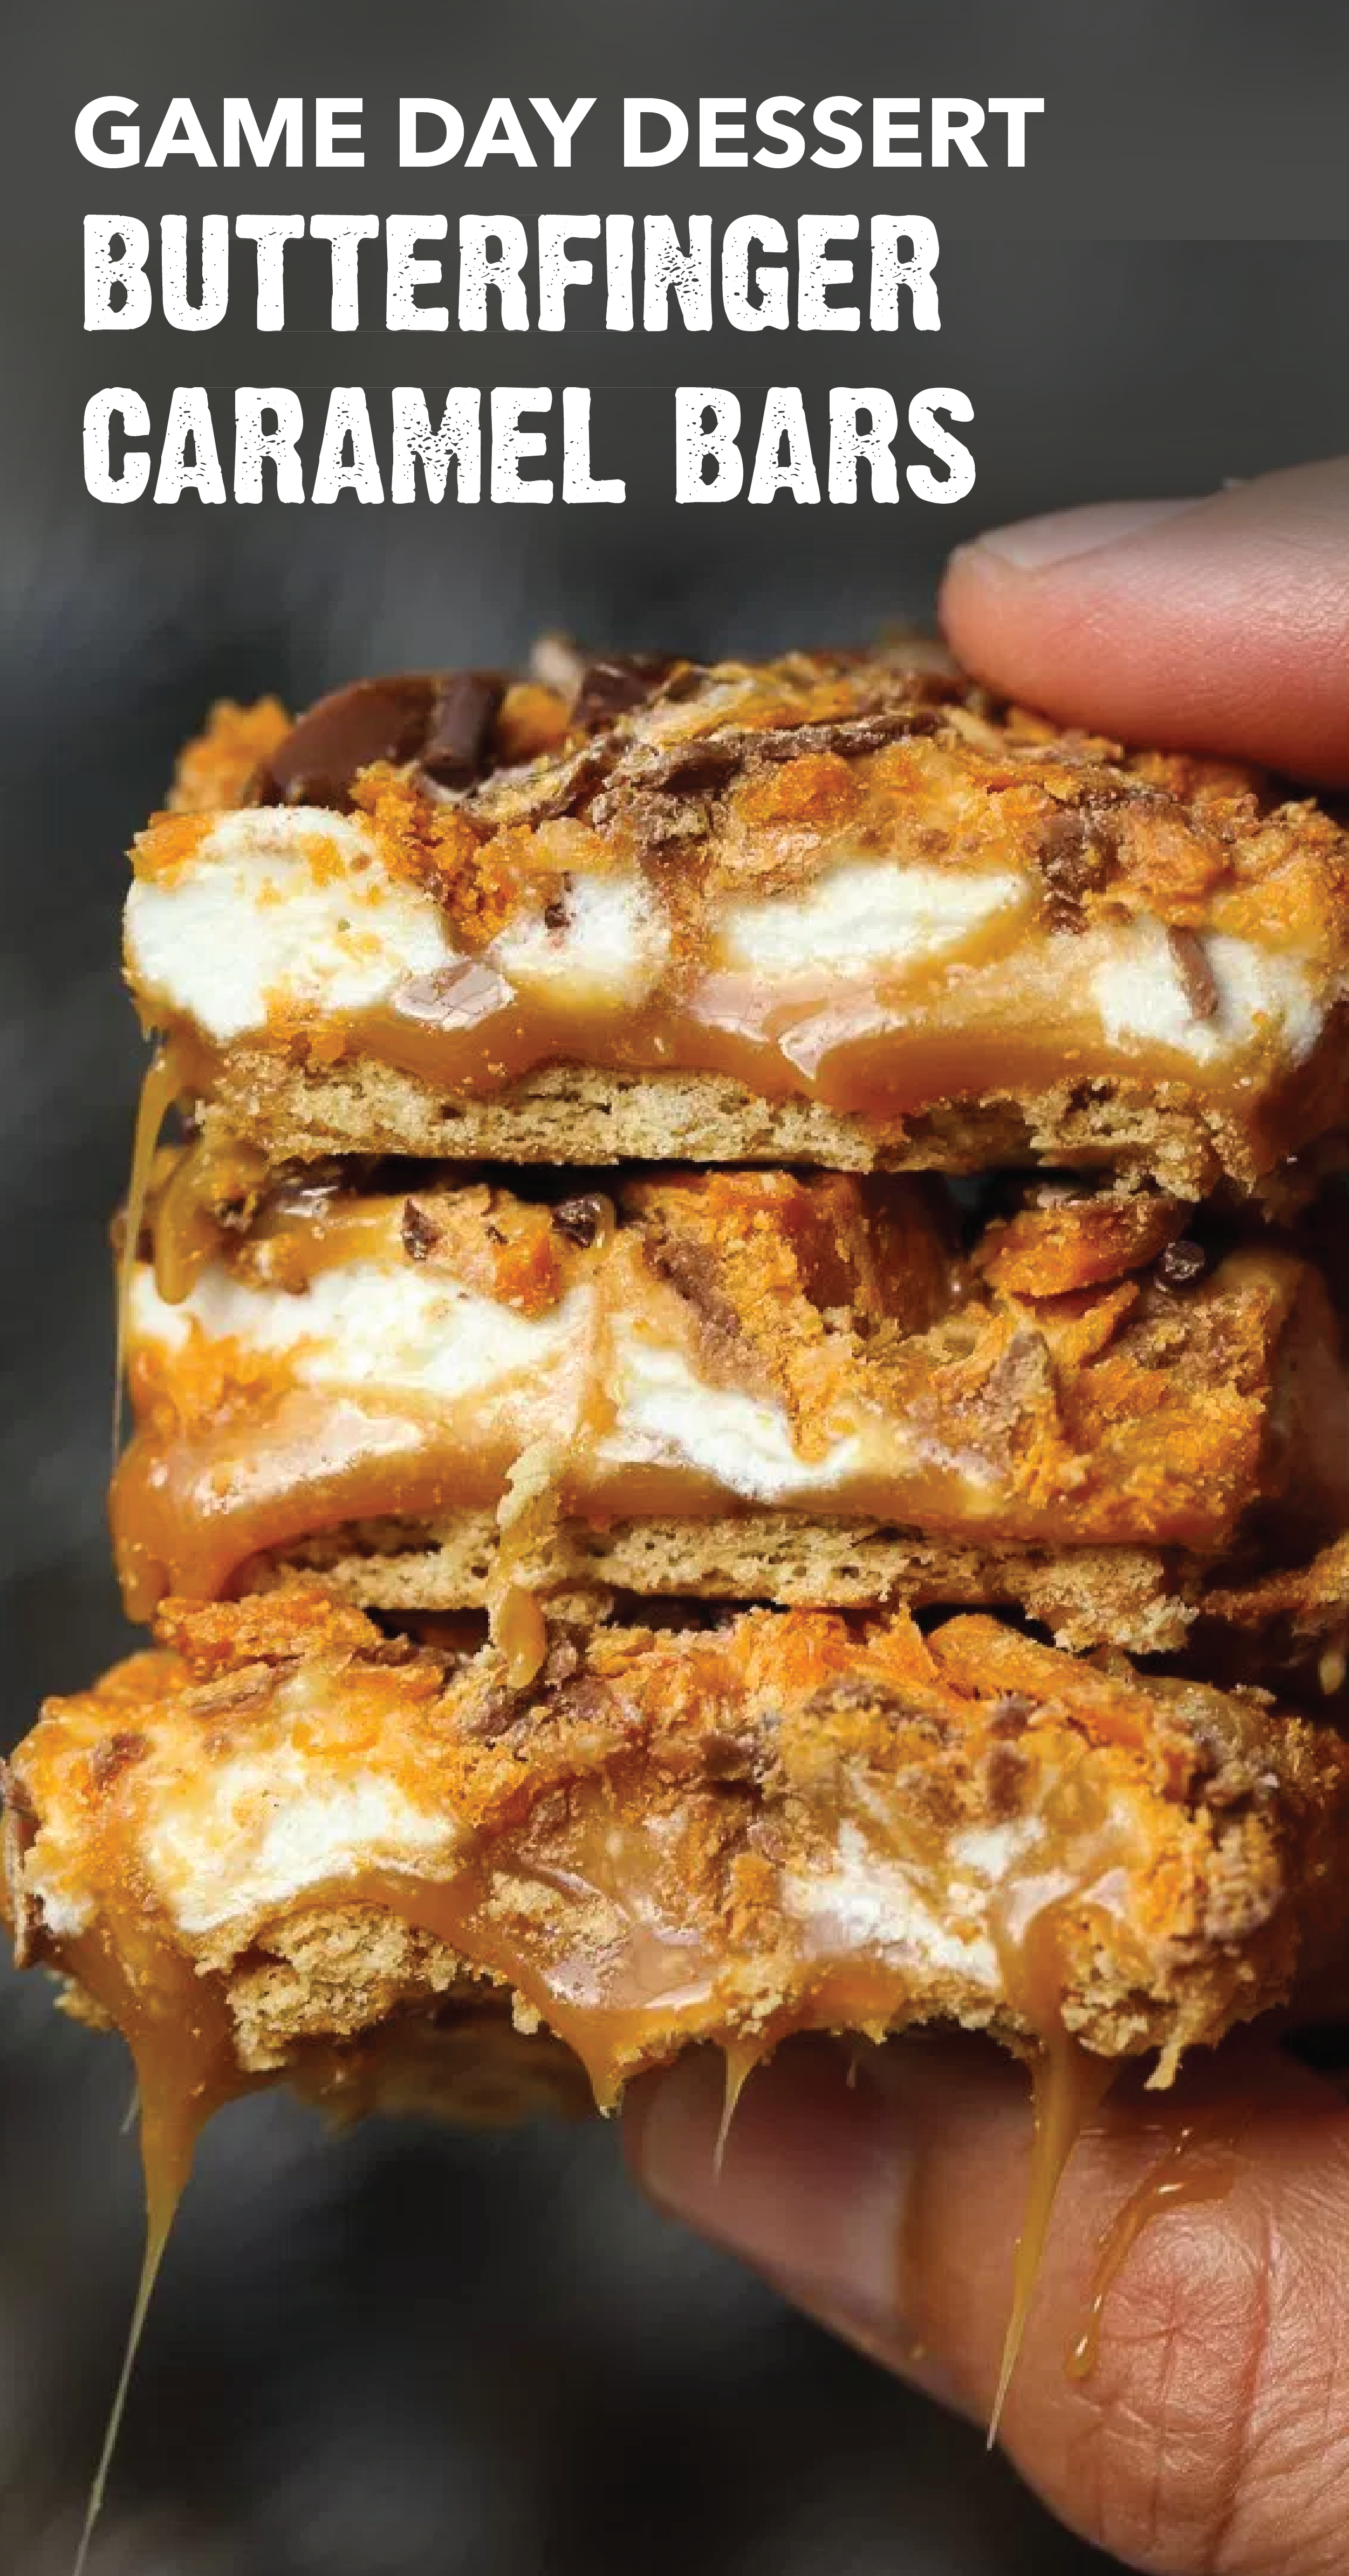 Butterfinger Caramel Bars Take a look at these ooey gooey Butterfinger Caramel Bars. This crispety, crunchety, peanut-buttery recipe is sure to be the MVP of your game day dessert table. Combine BUTTERFINGER® Bites candy bars with graham crackers, caramel, mini marshmallows, and chocolate to create this fan-favorite tailgating treat. Caramel Bars Take a look at these ooey gooey Butterfinger Caramel Bars. This crispety, crunchety, peanut-buttery recipe is sure to be the MVP of your game day dessert table. Combine BUTTERFINGER® Bites candy bars with graham crackers, caramel, mini marshmallows, and chocolate to create this fan-favorite tailgatin